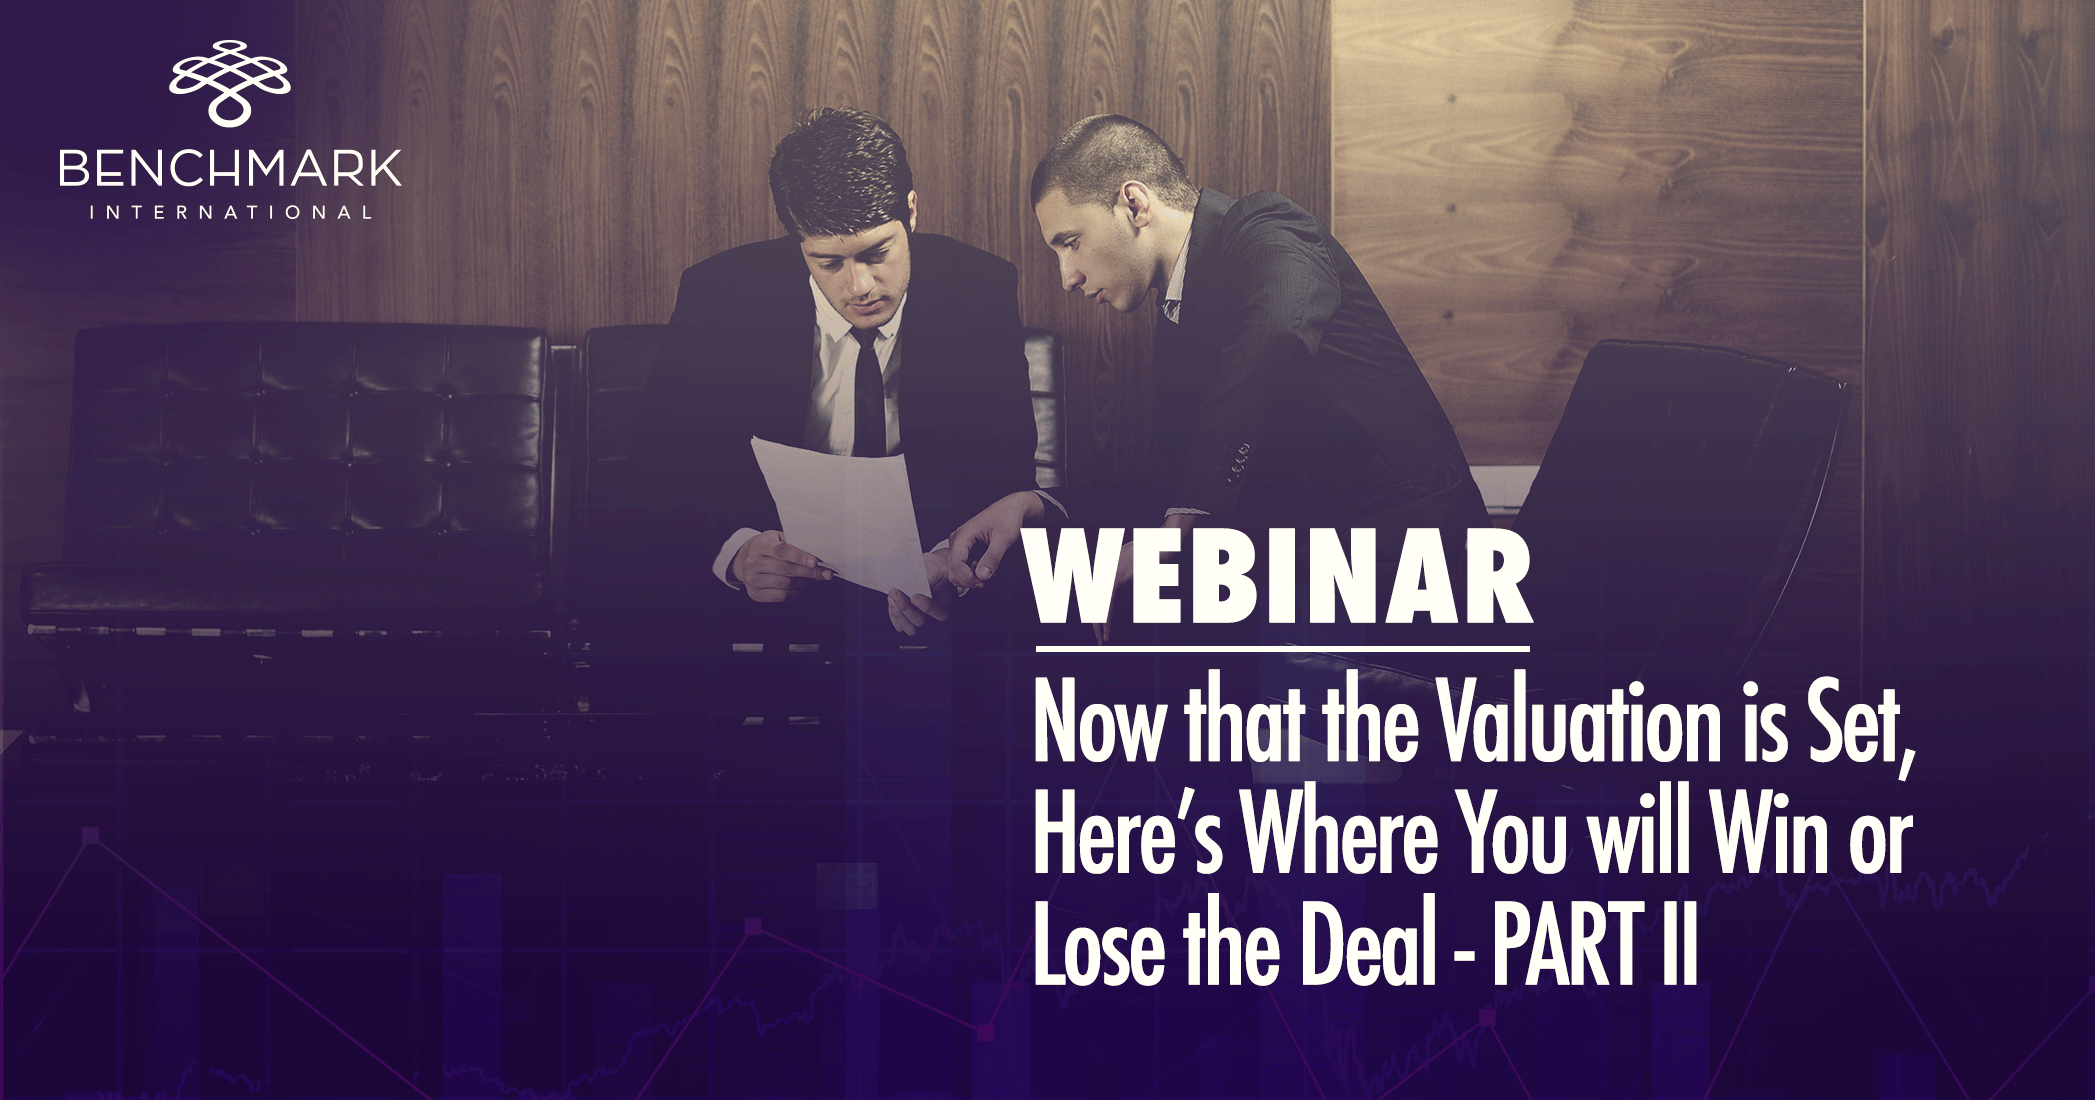 Webinar Video: Now that the Valuation is Set, Here's Where You will Win or Lose the Deal Part II